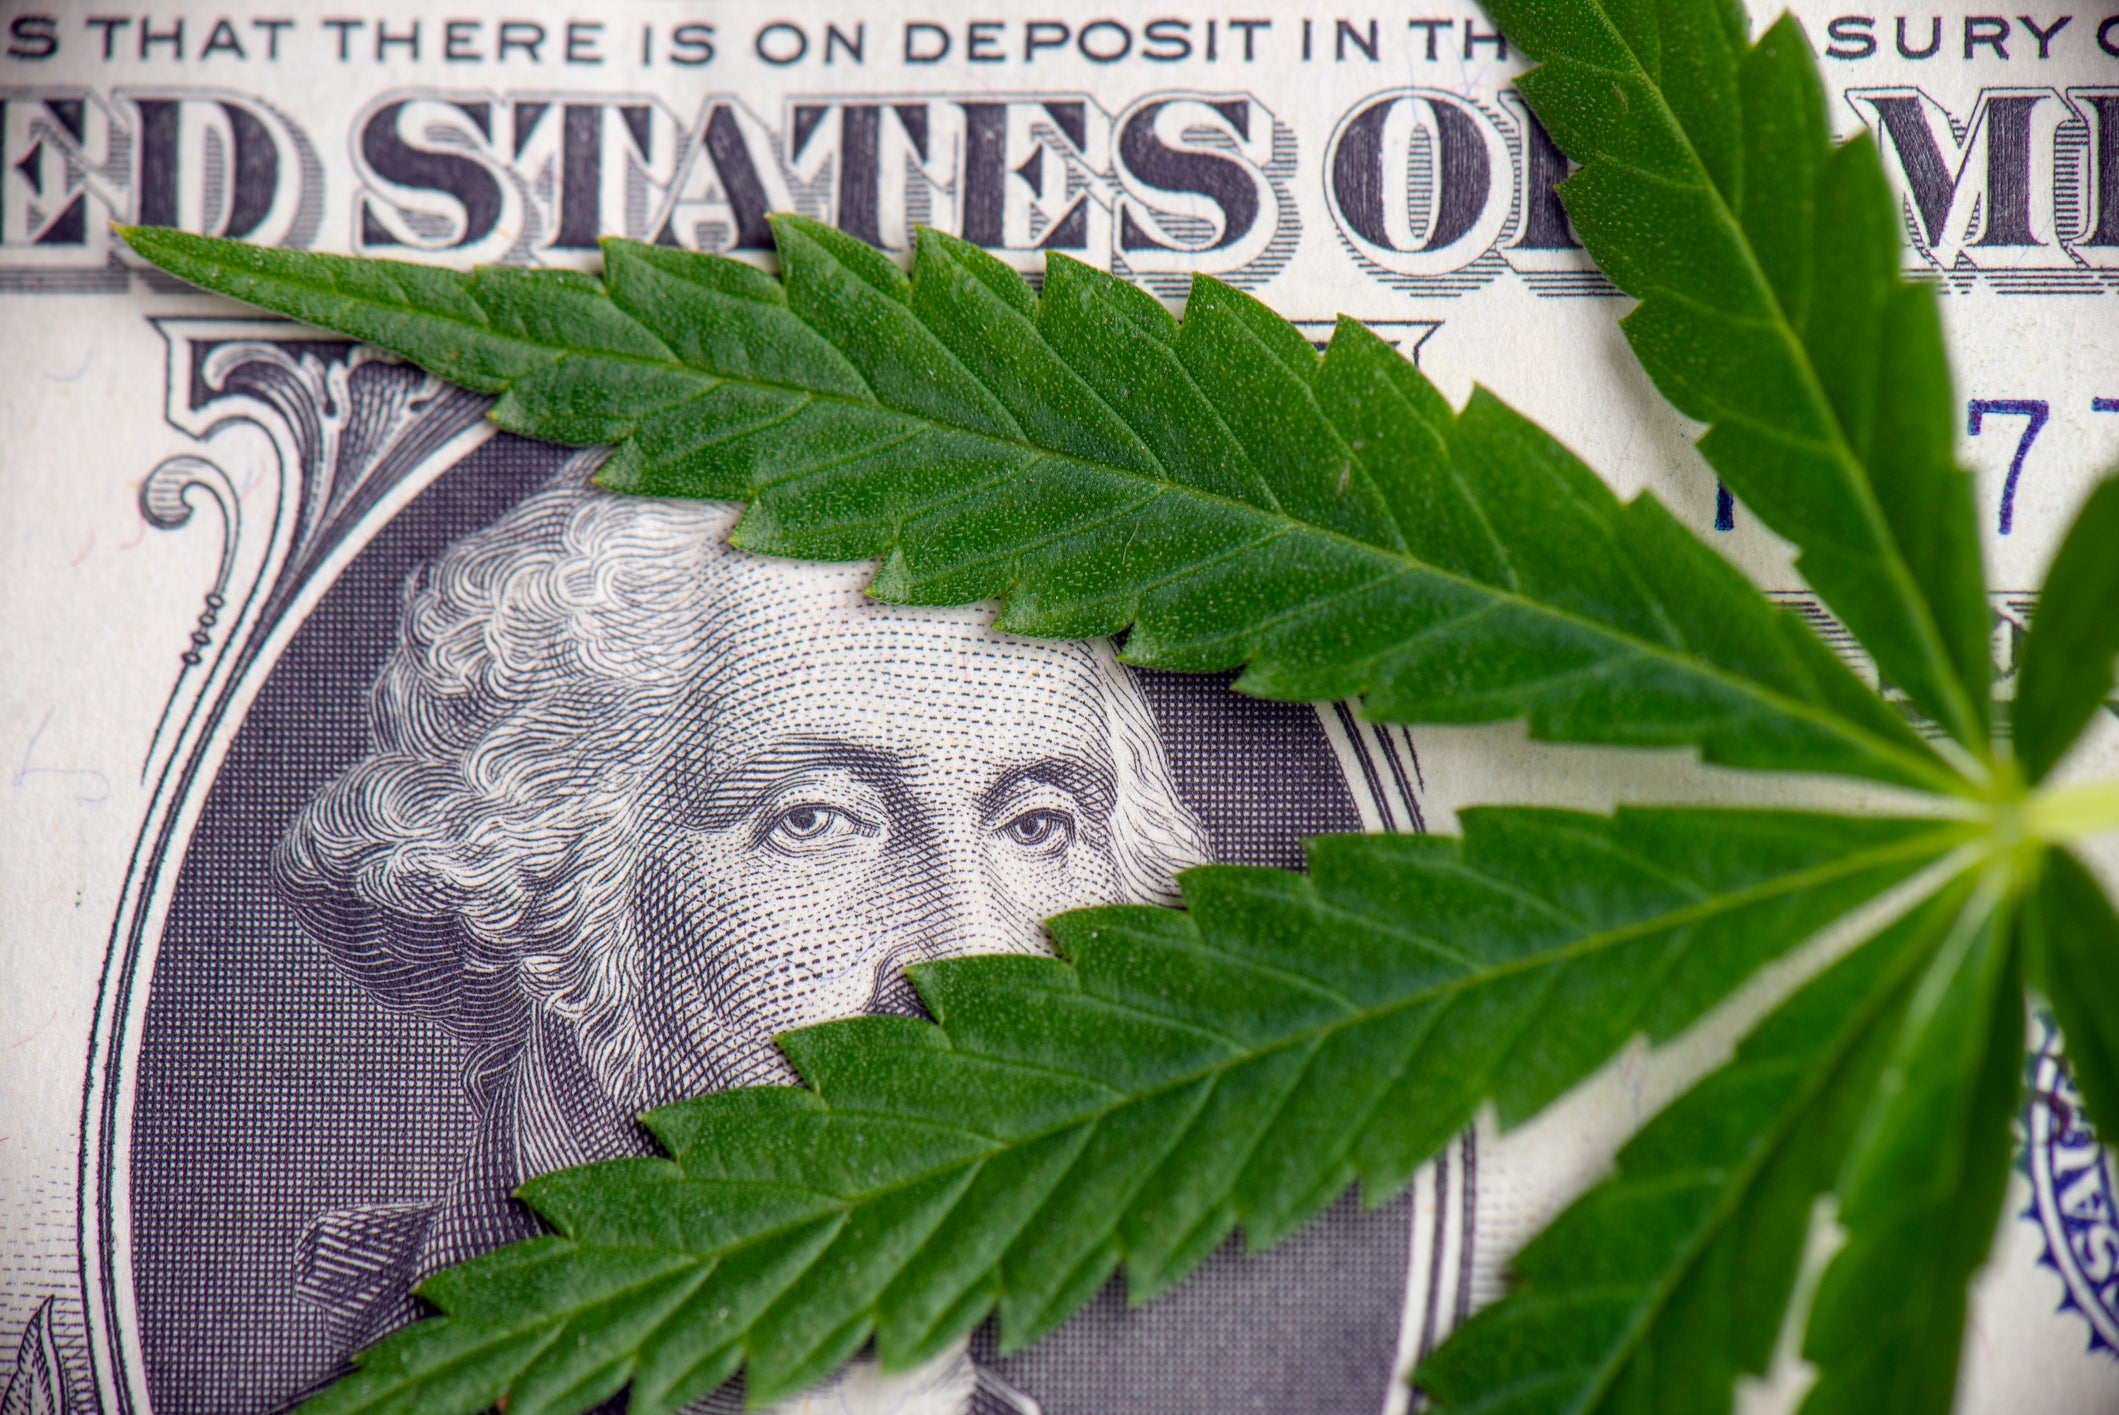 3 Reasons I'm Cautious About Canopy Growth Stock